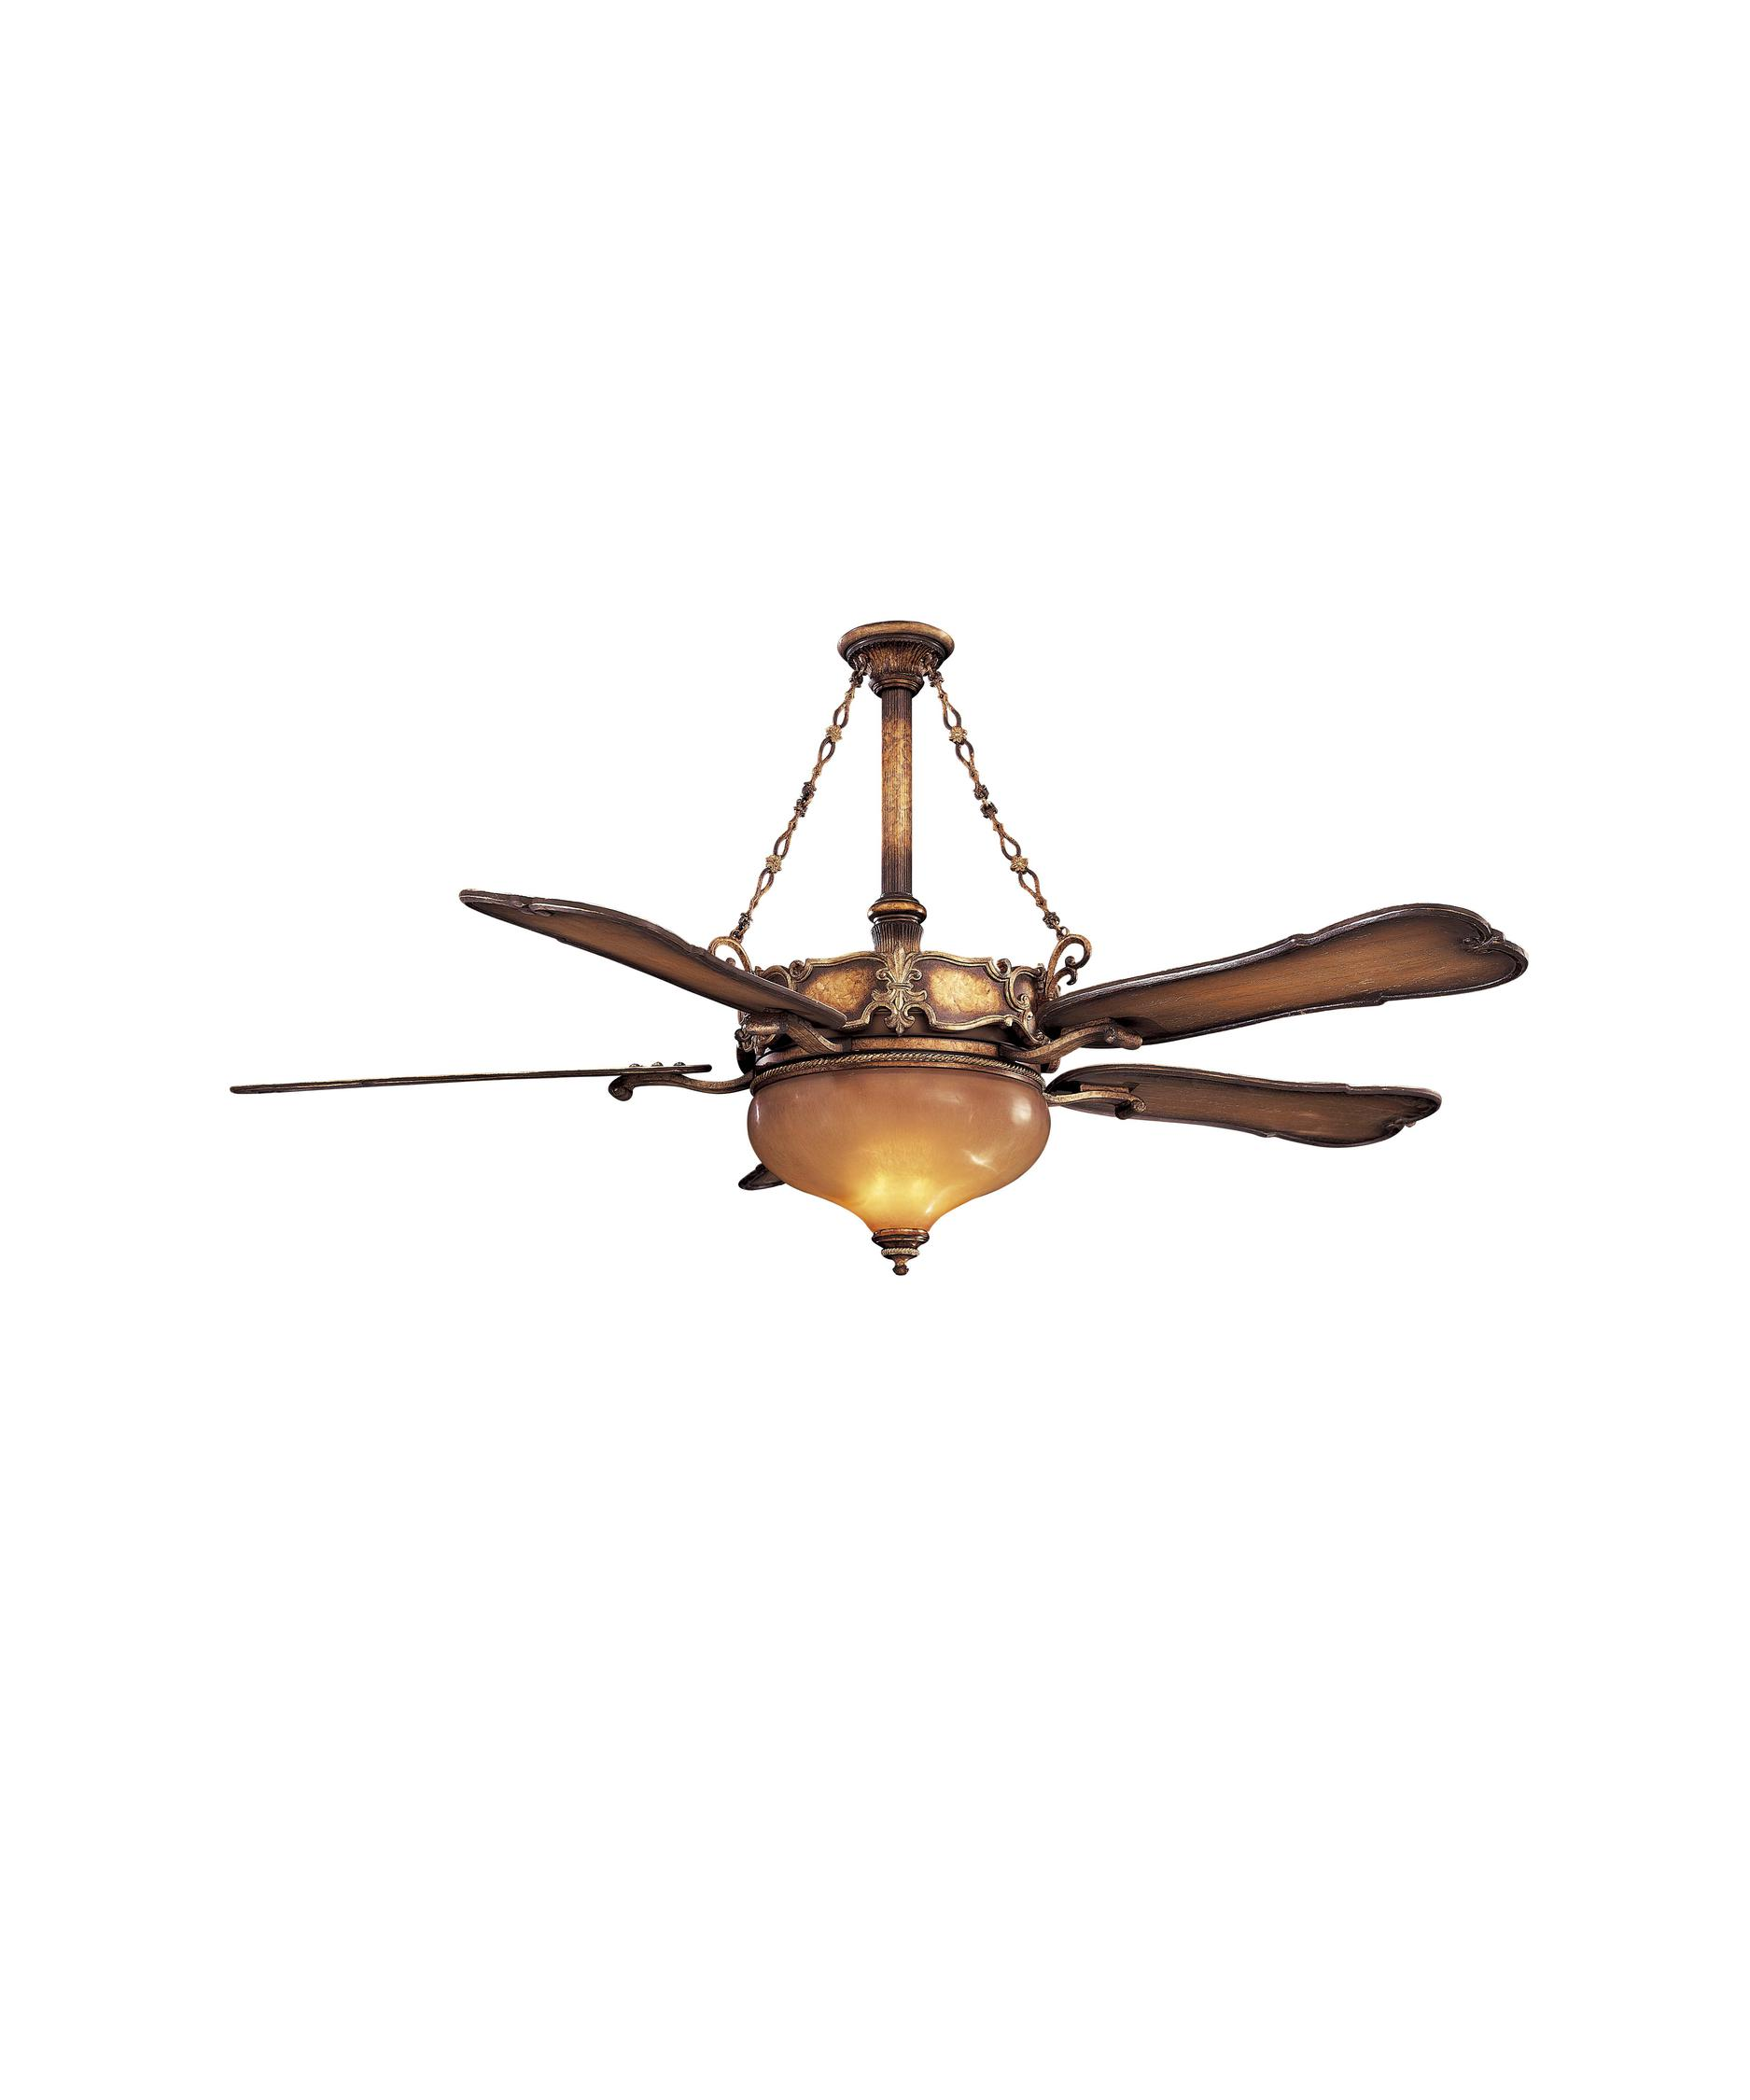 shown in arles gold finish and amber dawn glass - Minka Ceiling Fans